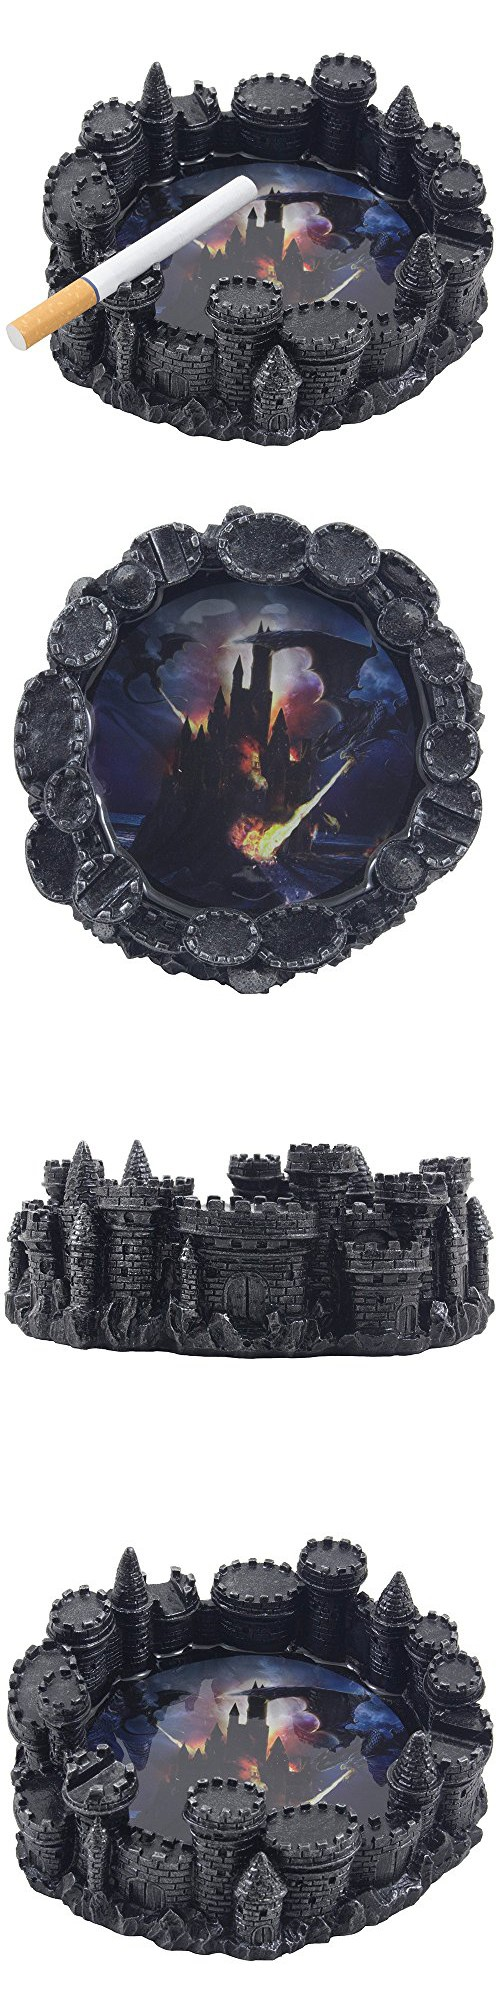 mythical fire breathing dragon attacking castle ashtray in metallic look for decorative gothic and medieval home